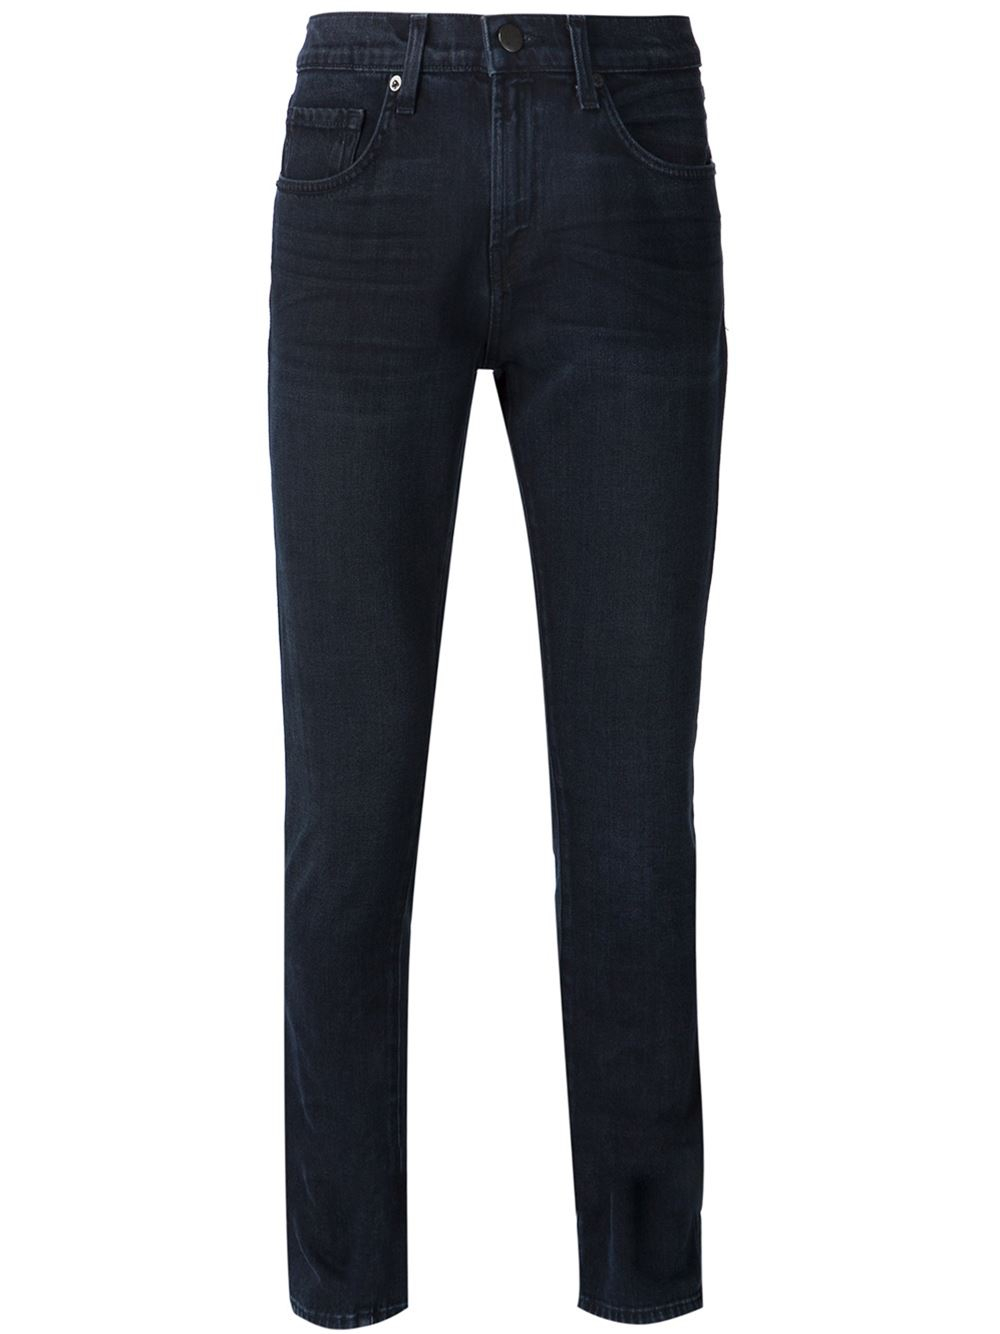 j brand straight leg jeans in blue for men lyst. Black Bedroom Furniture Sets. Home Design Ideas